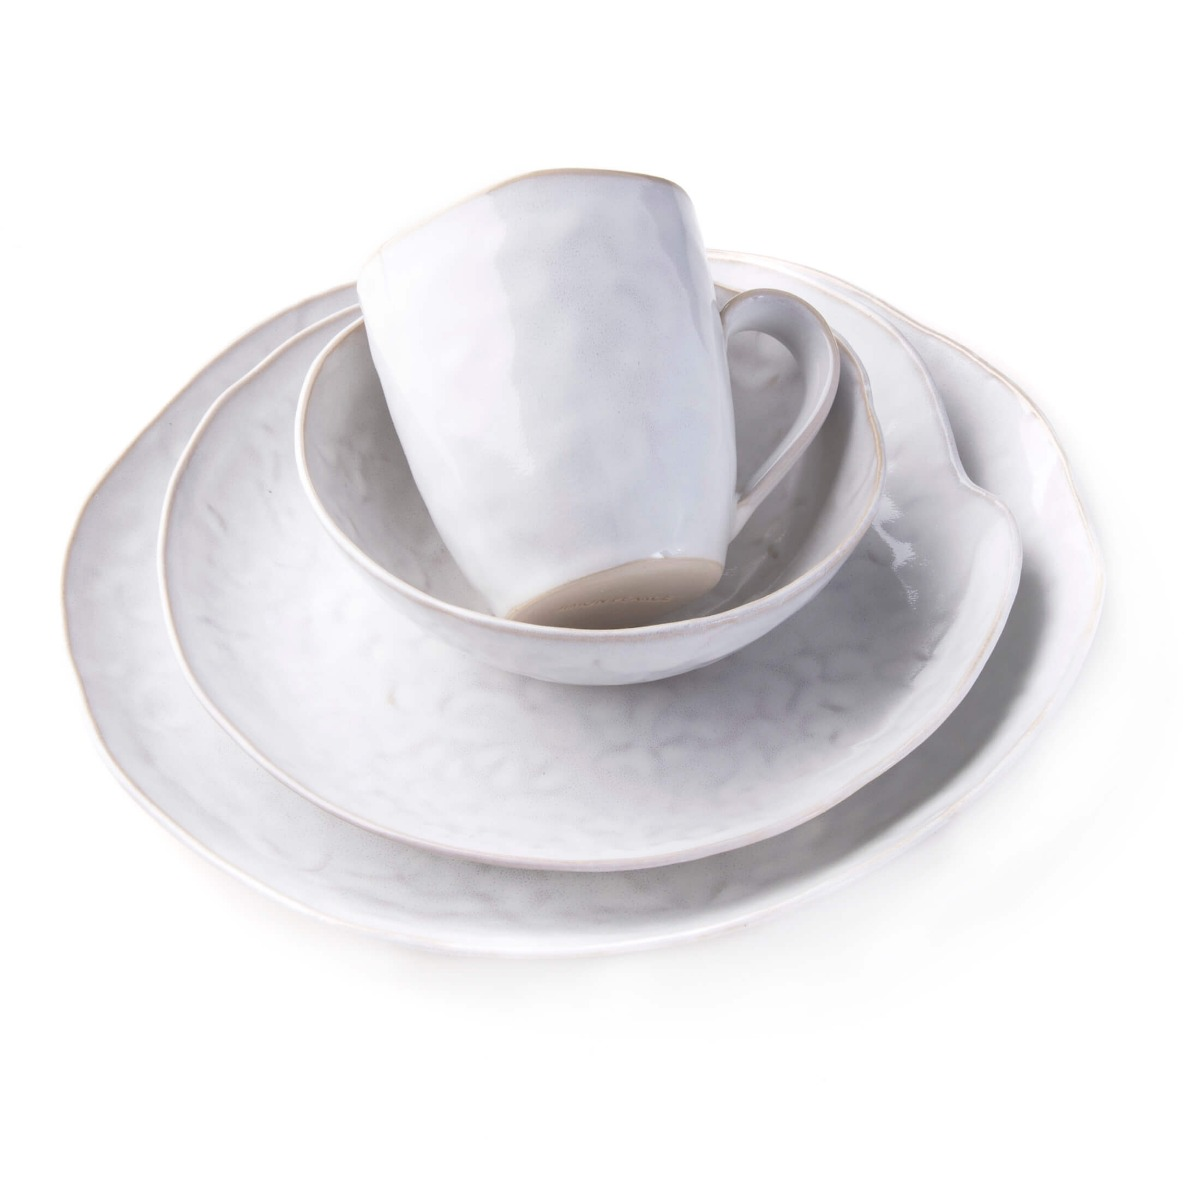 BURLINGTON CLOUD DINNERWARE